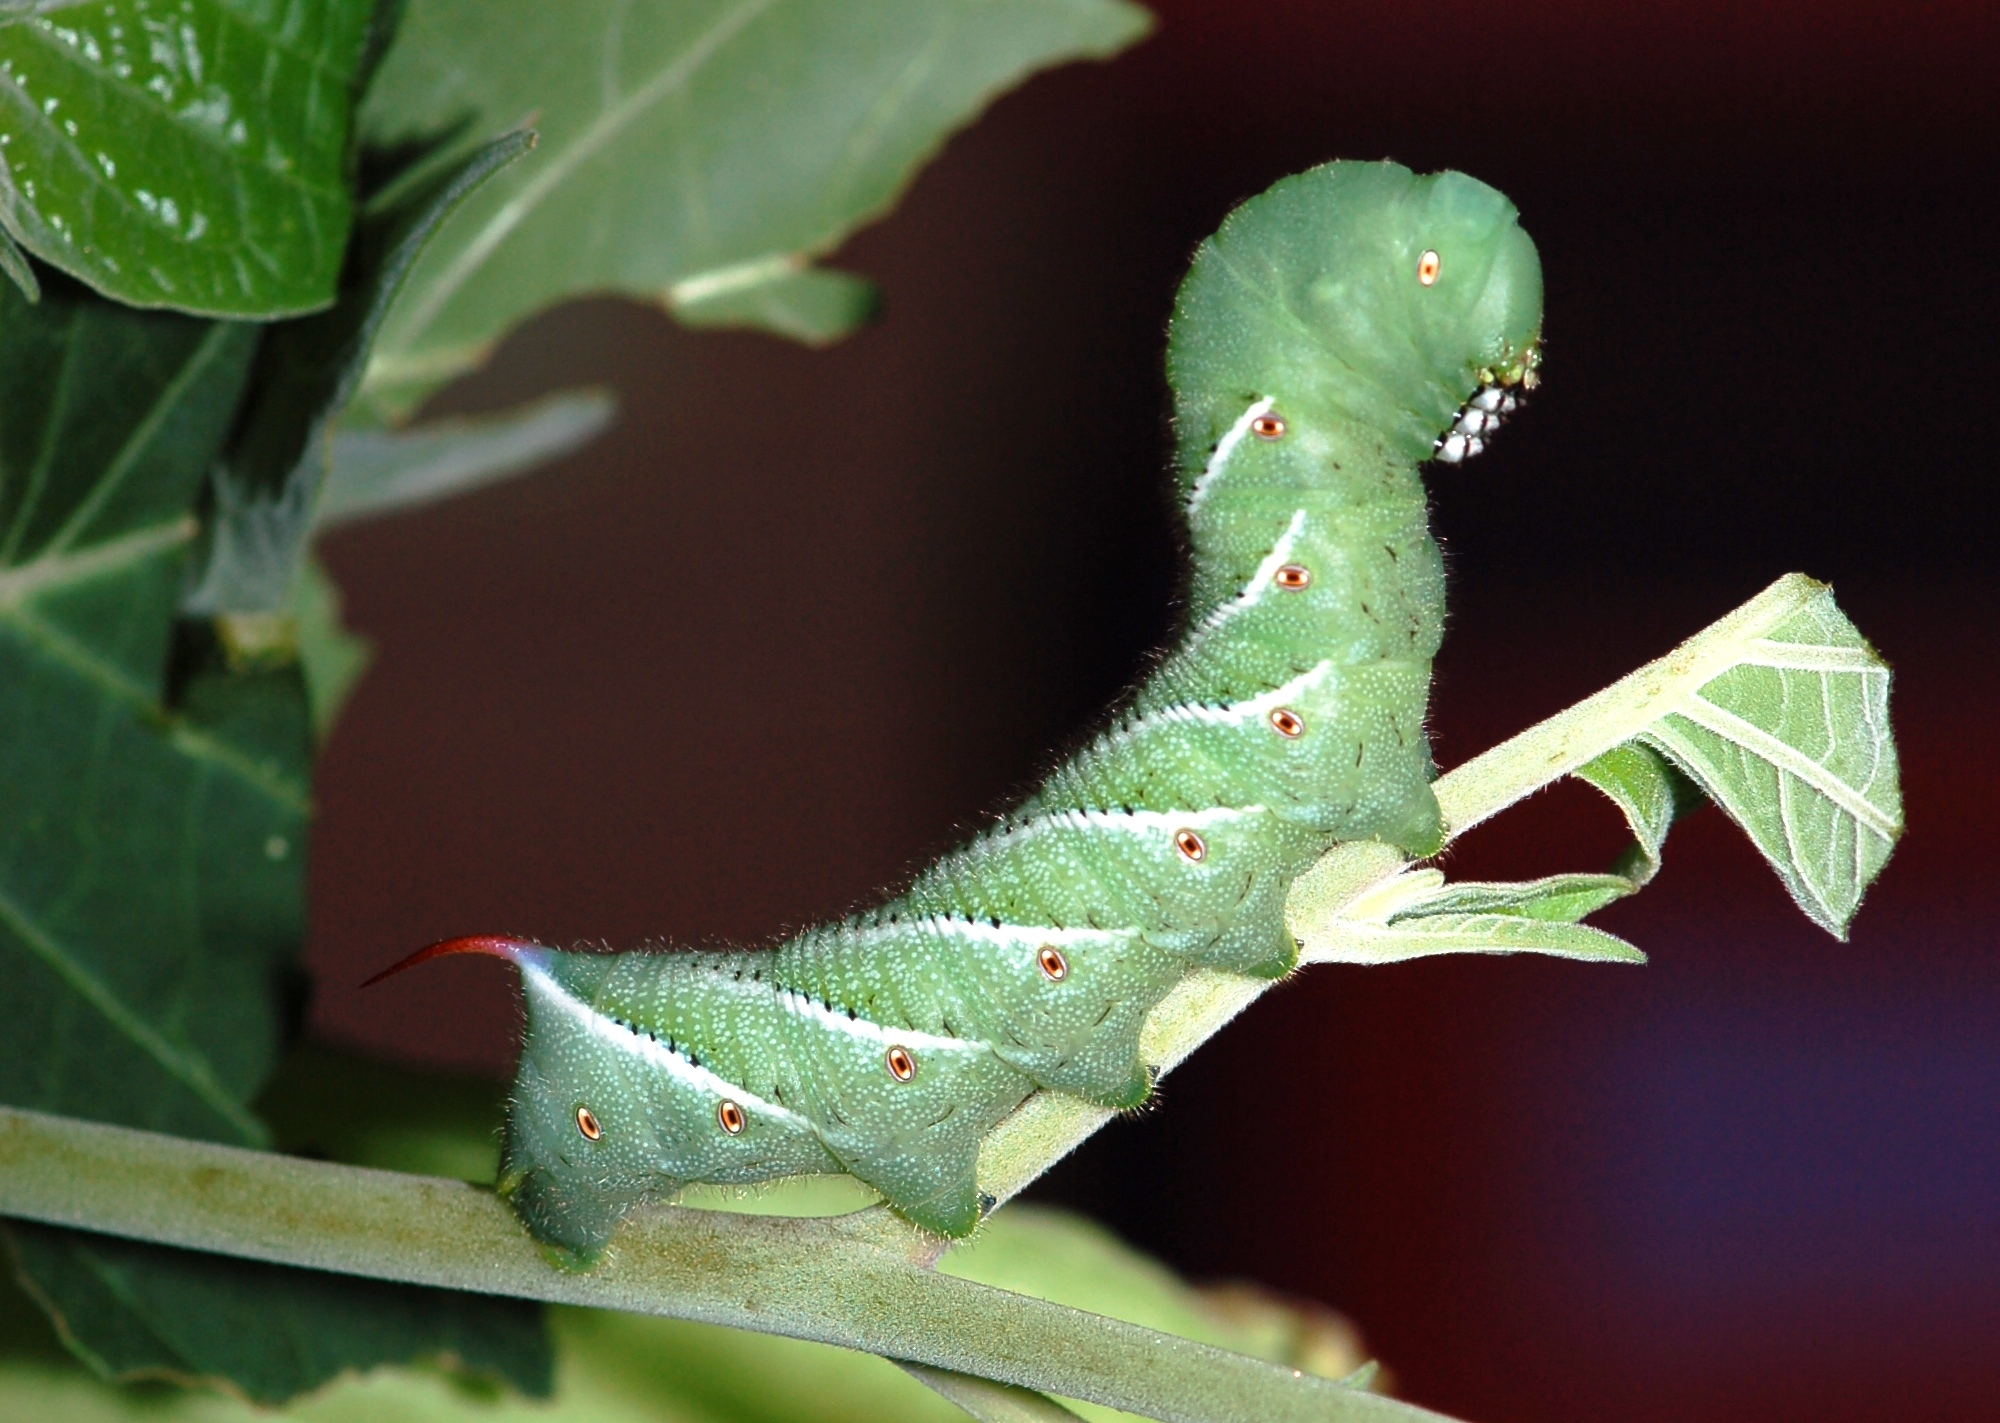 Where do tomato hornworms come from - Image By theresilientactivist